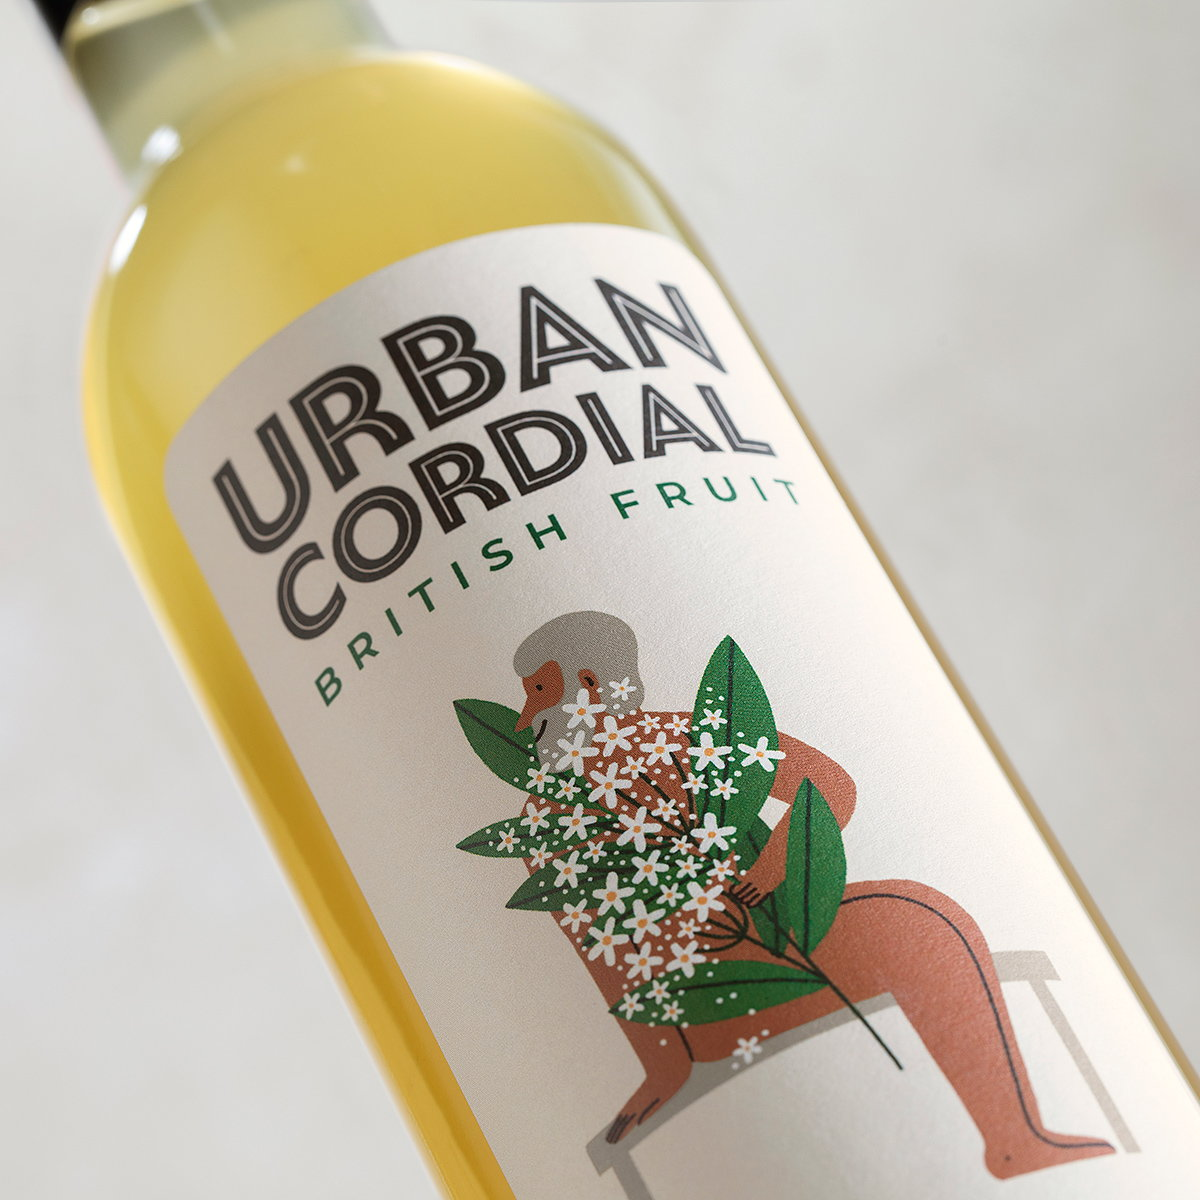 Jackdaw Design Delivers Brand Identity with Unique Fruity Twist for Urban Cordial